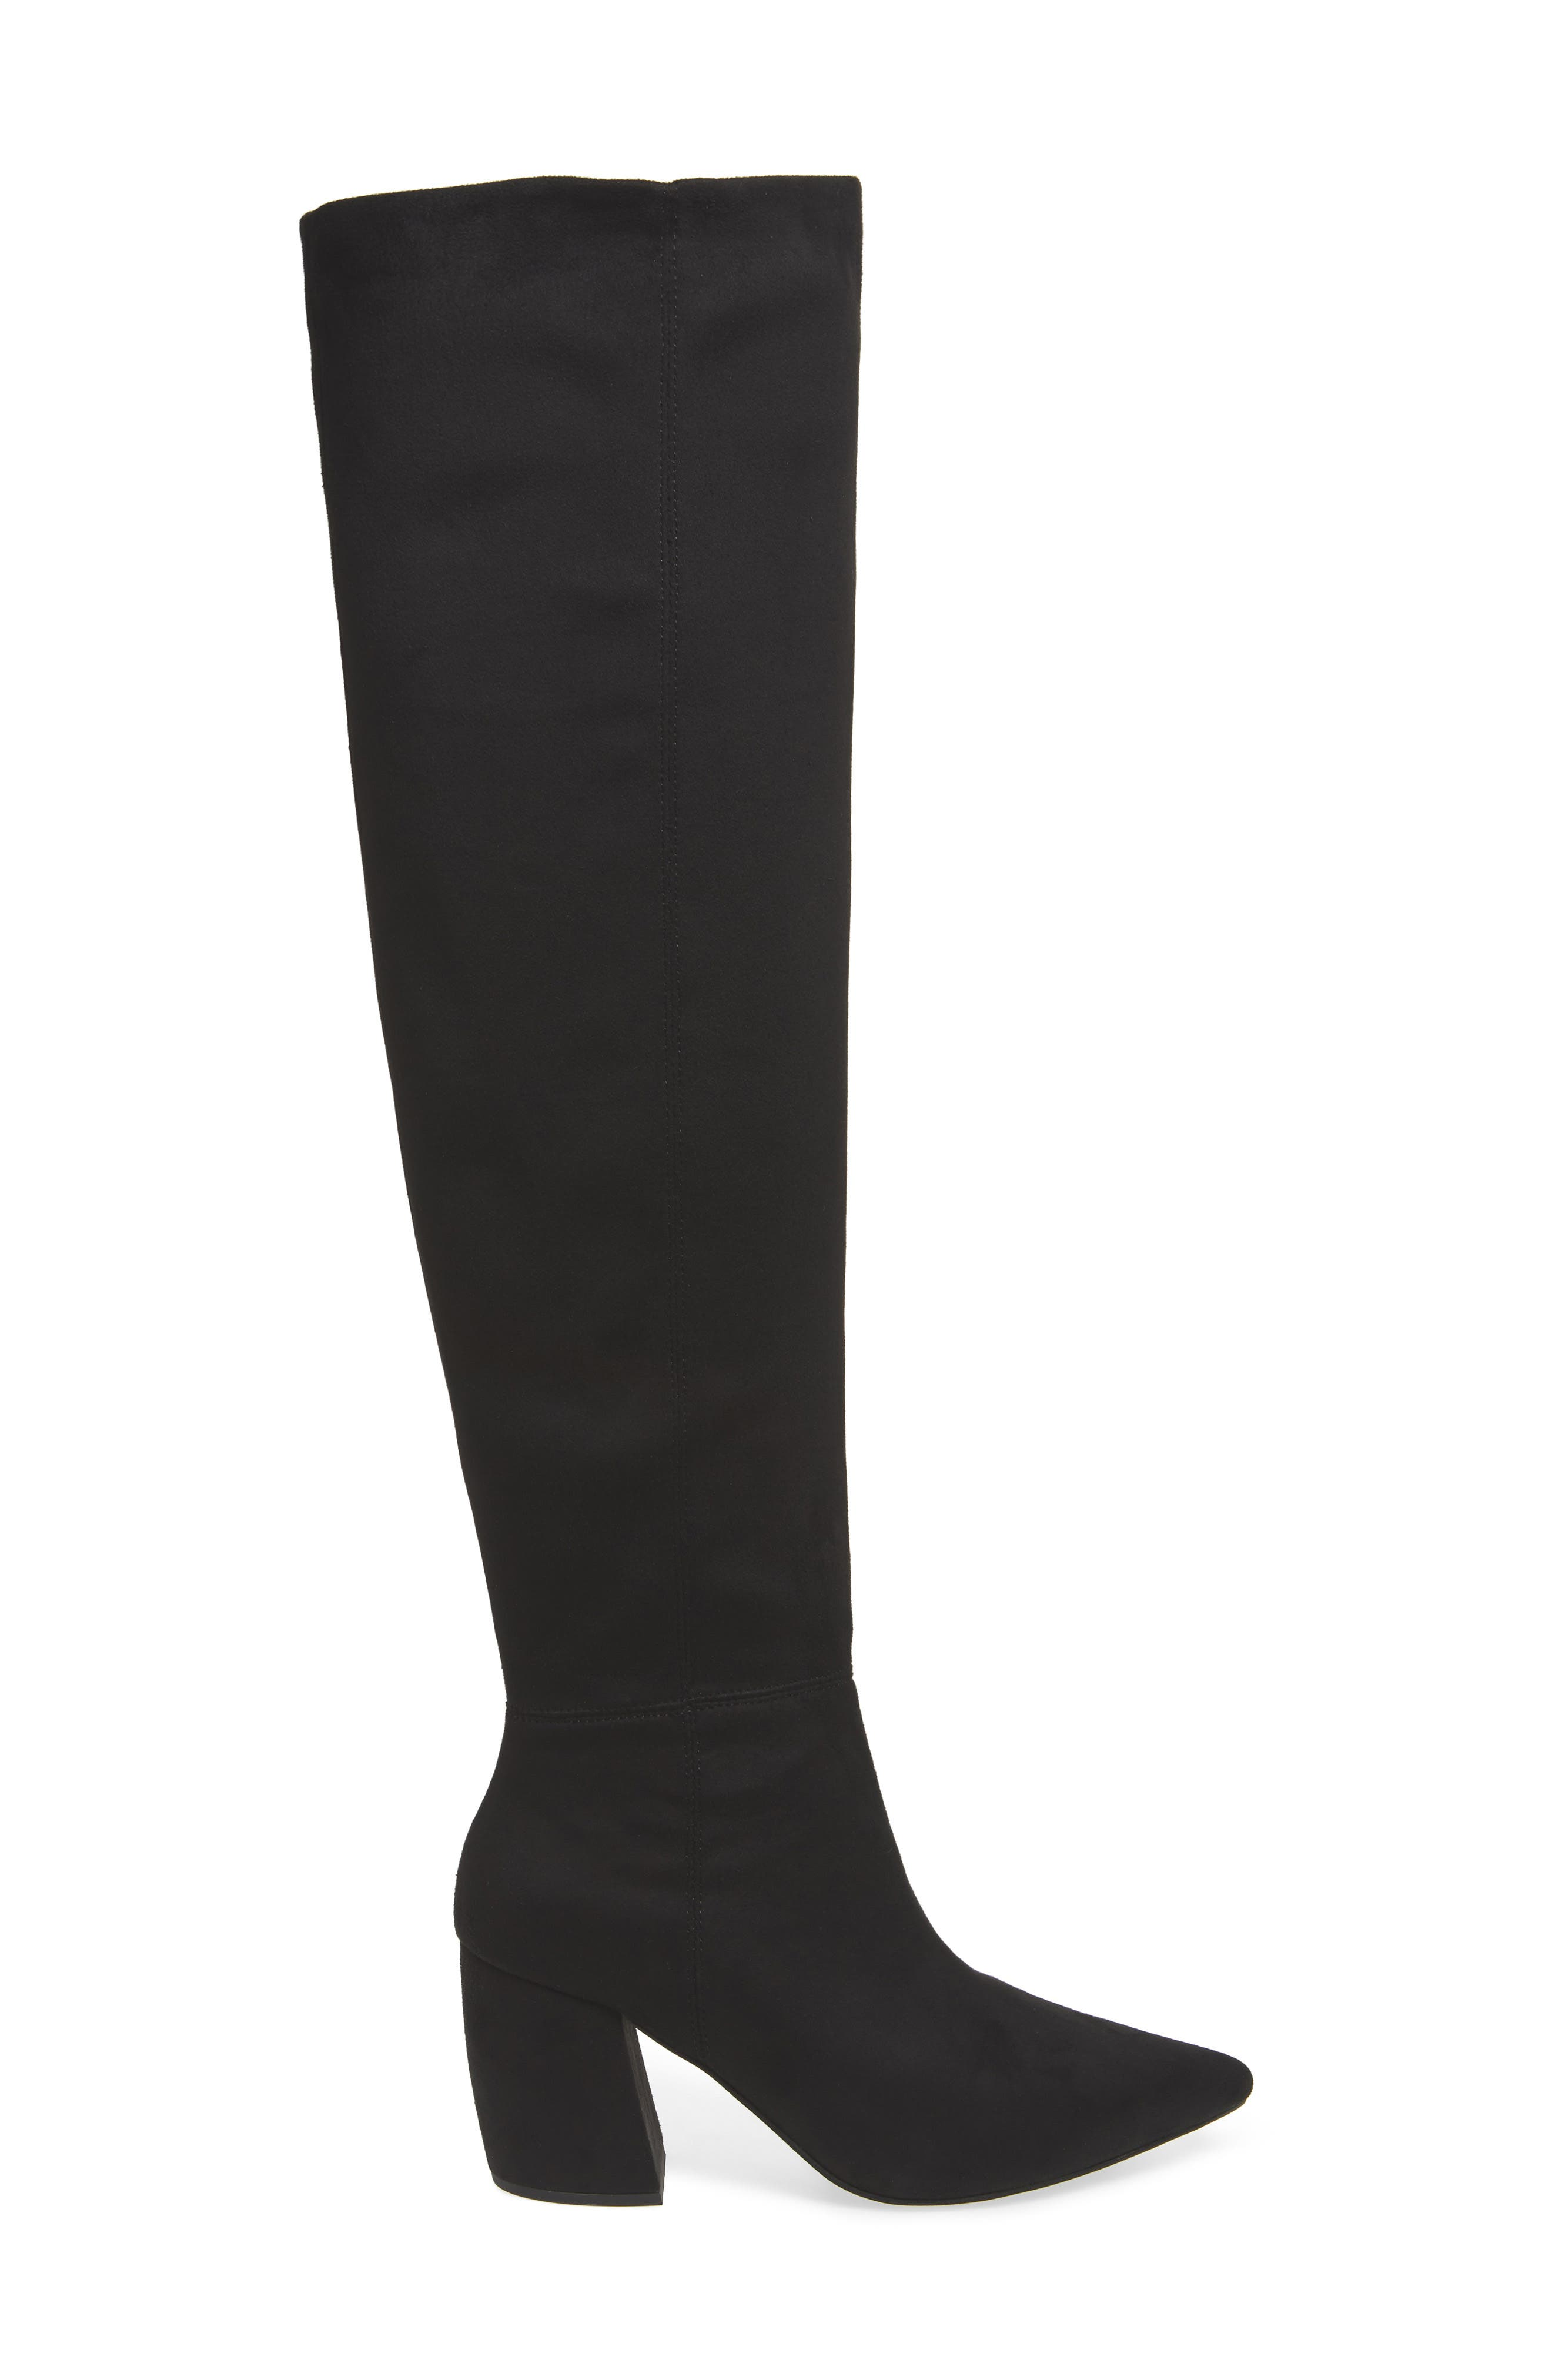 Final Slouch Over the Knee Boot,                             Alternate thumbnail 3, color,                             BLACK SUEDE